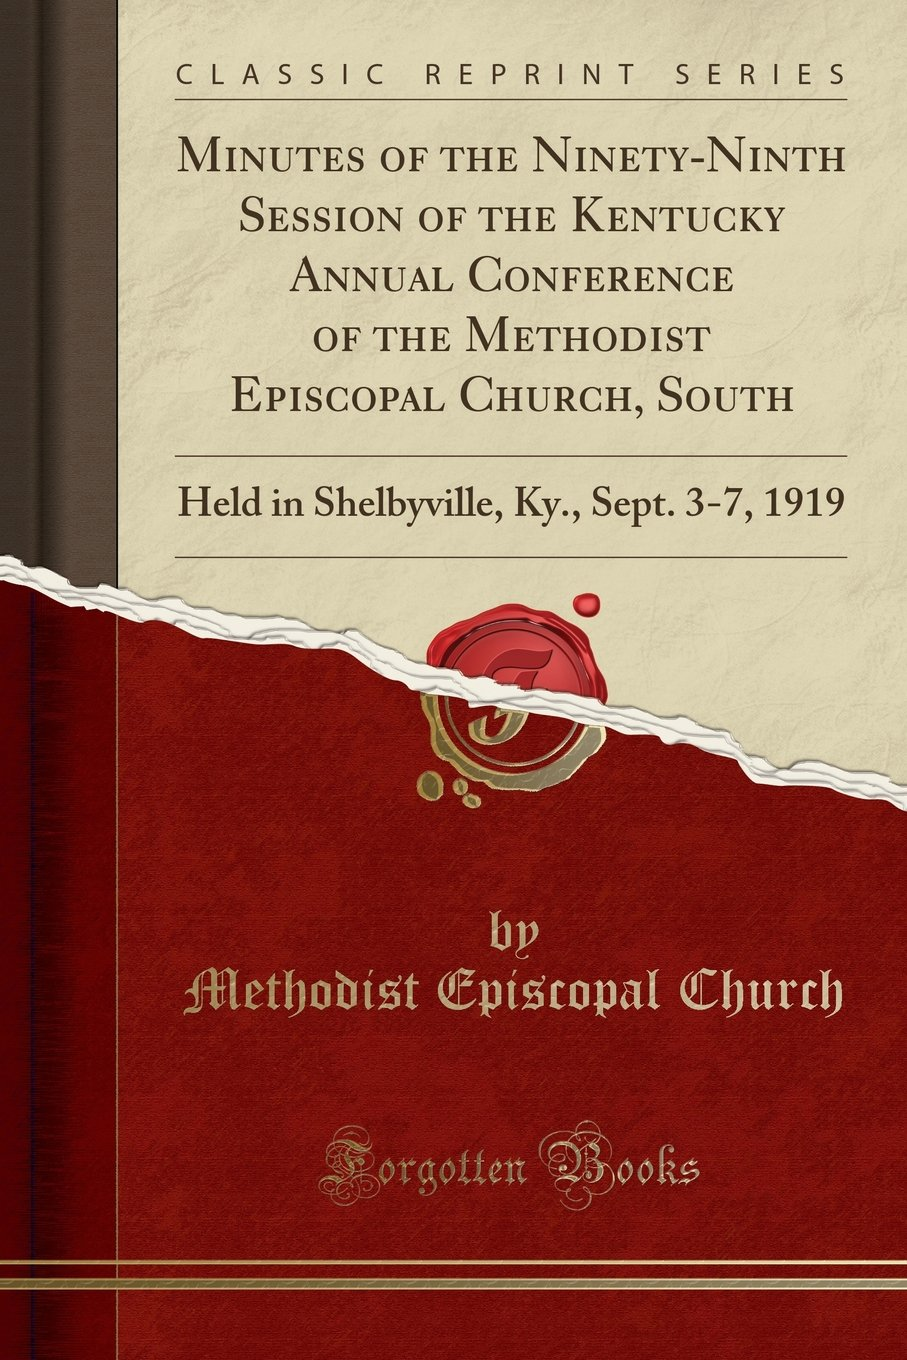 Download Minutes of the Ninety-Ninth Session of the Kentucky Annual Conference of the Methodist Episcopal Church, South: Held in Shelbyville, Ky., Sept. 3-7, 1919 (Classic Reprint) pdf epub